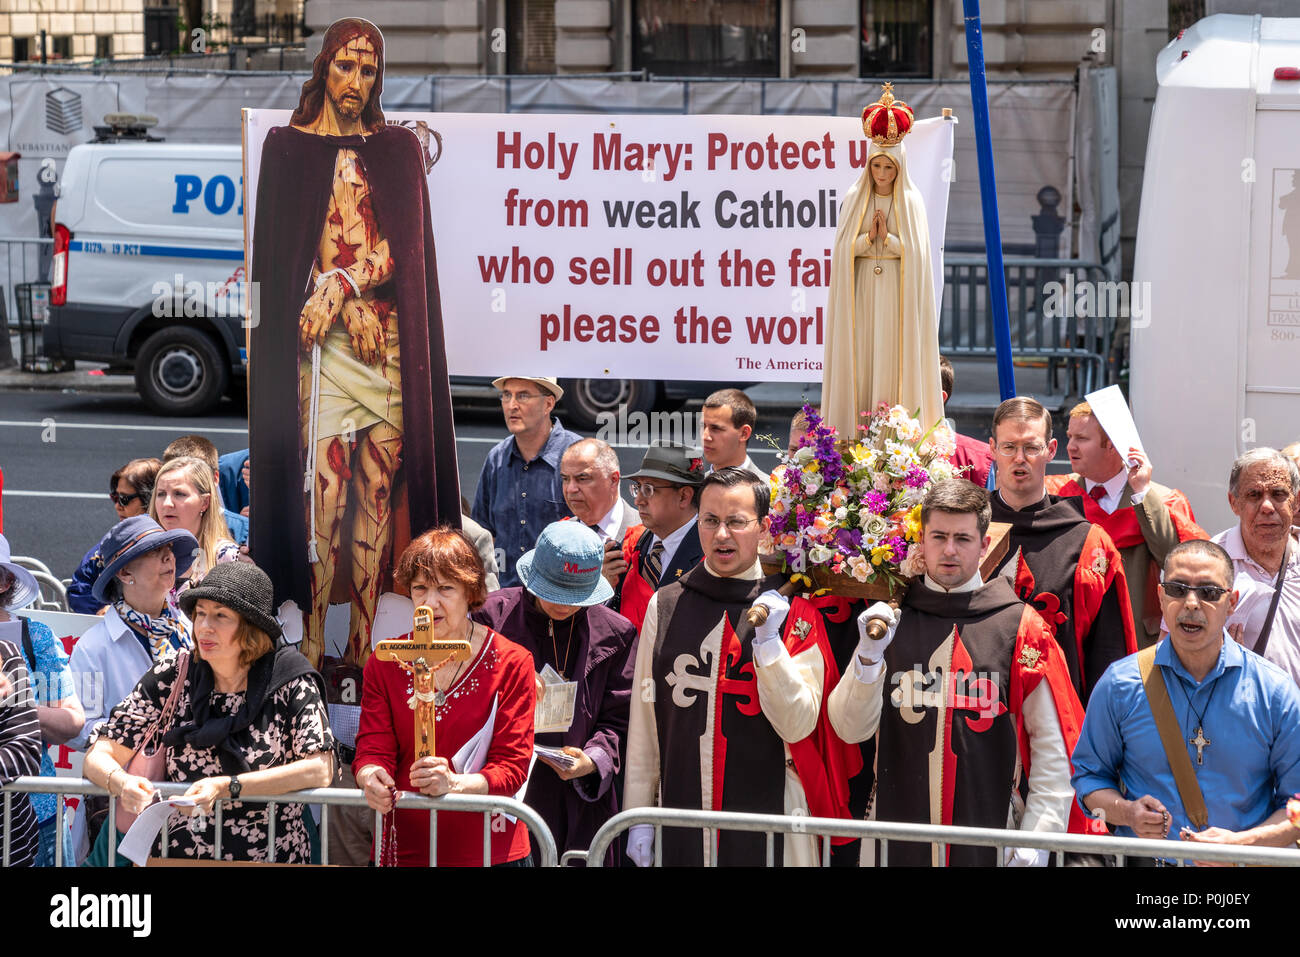 New York, USA. 9th June 2018. A group of ultra conservative Catholics  gather outside the Metropolitan Museum of Art to protest  The Met's 'Heavenly Bodies' Exhibit, which features artifacts donated by the Vatican. The protest was organized by the  American Society for the Defense of Tradition, Family and Property.  Photo by Enrique Shore Credit: Enrique Shore/Alamy Live News - Stock Image